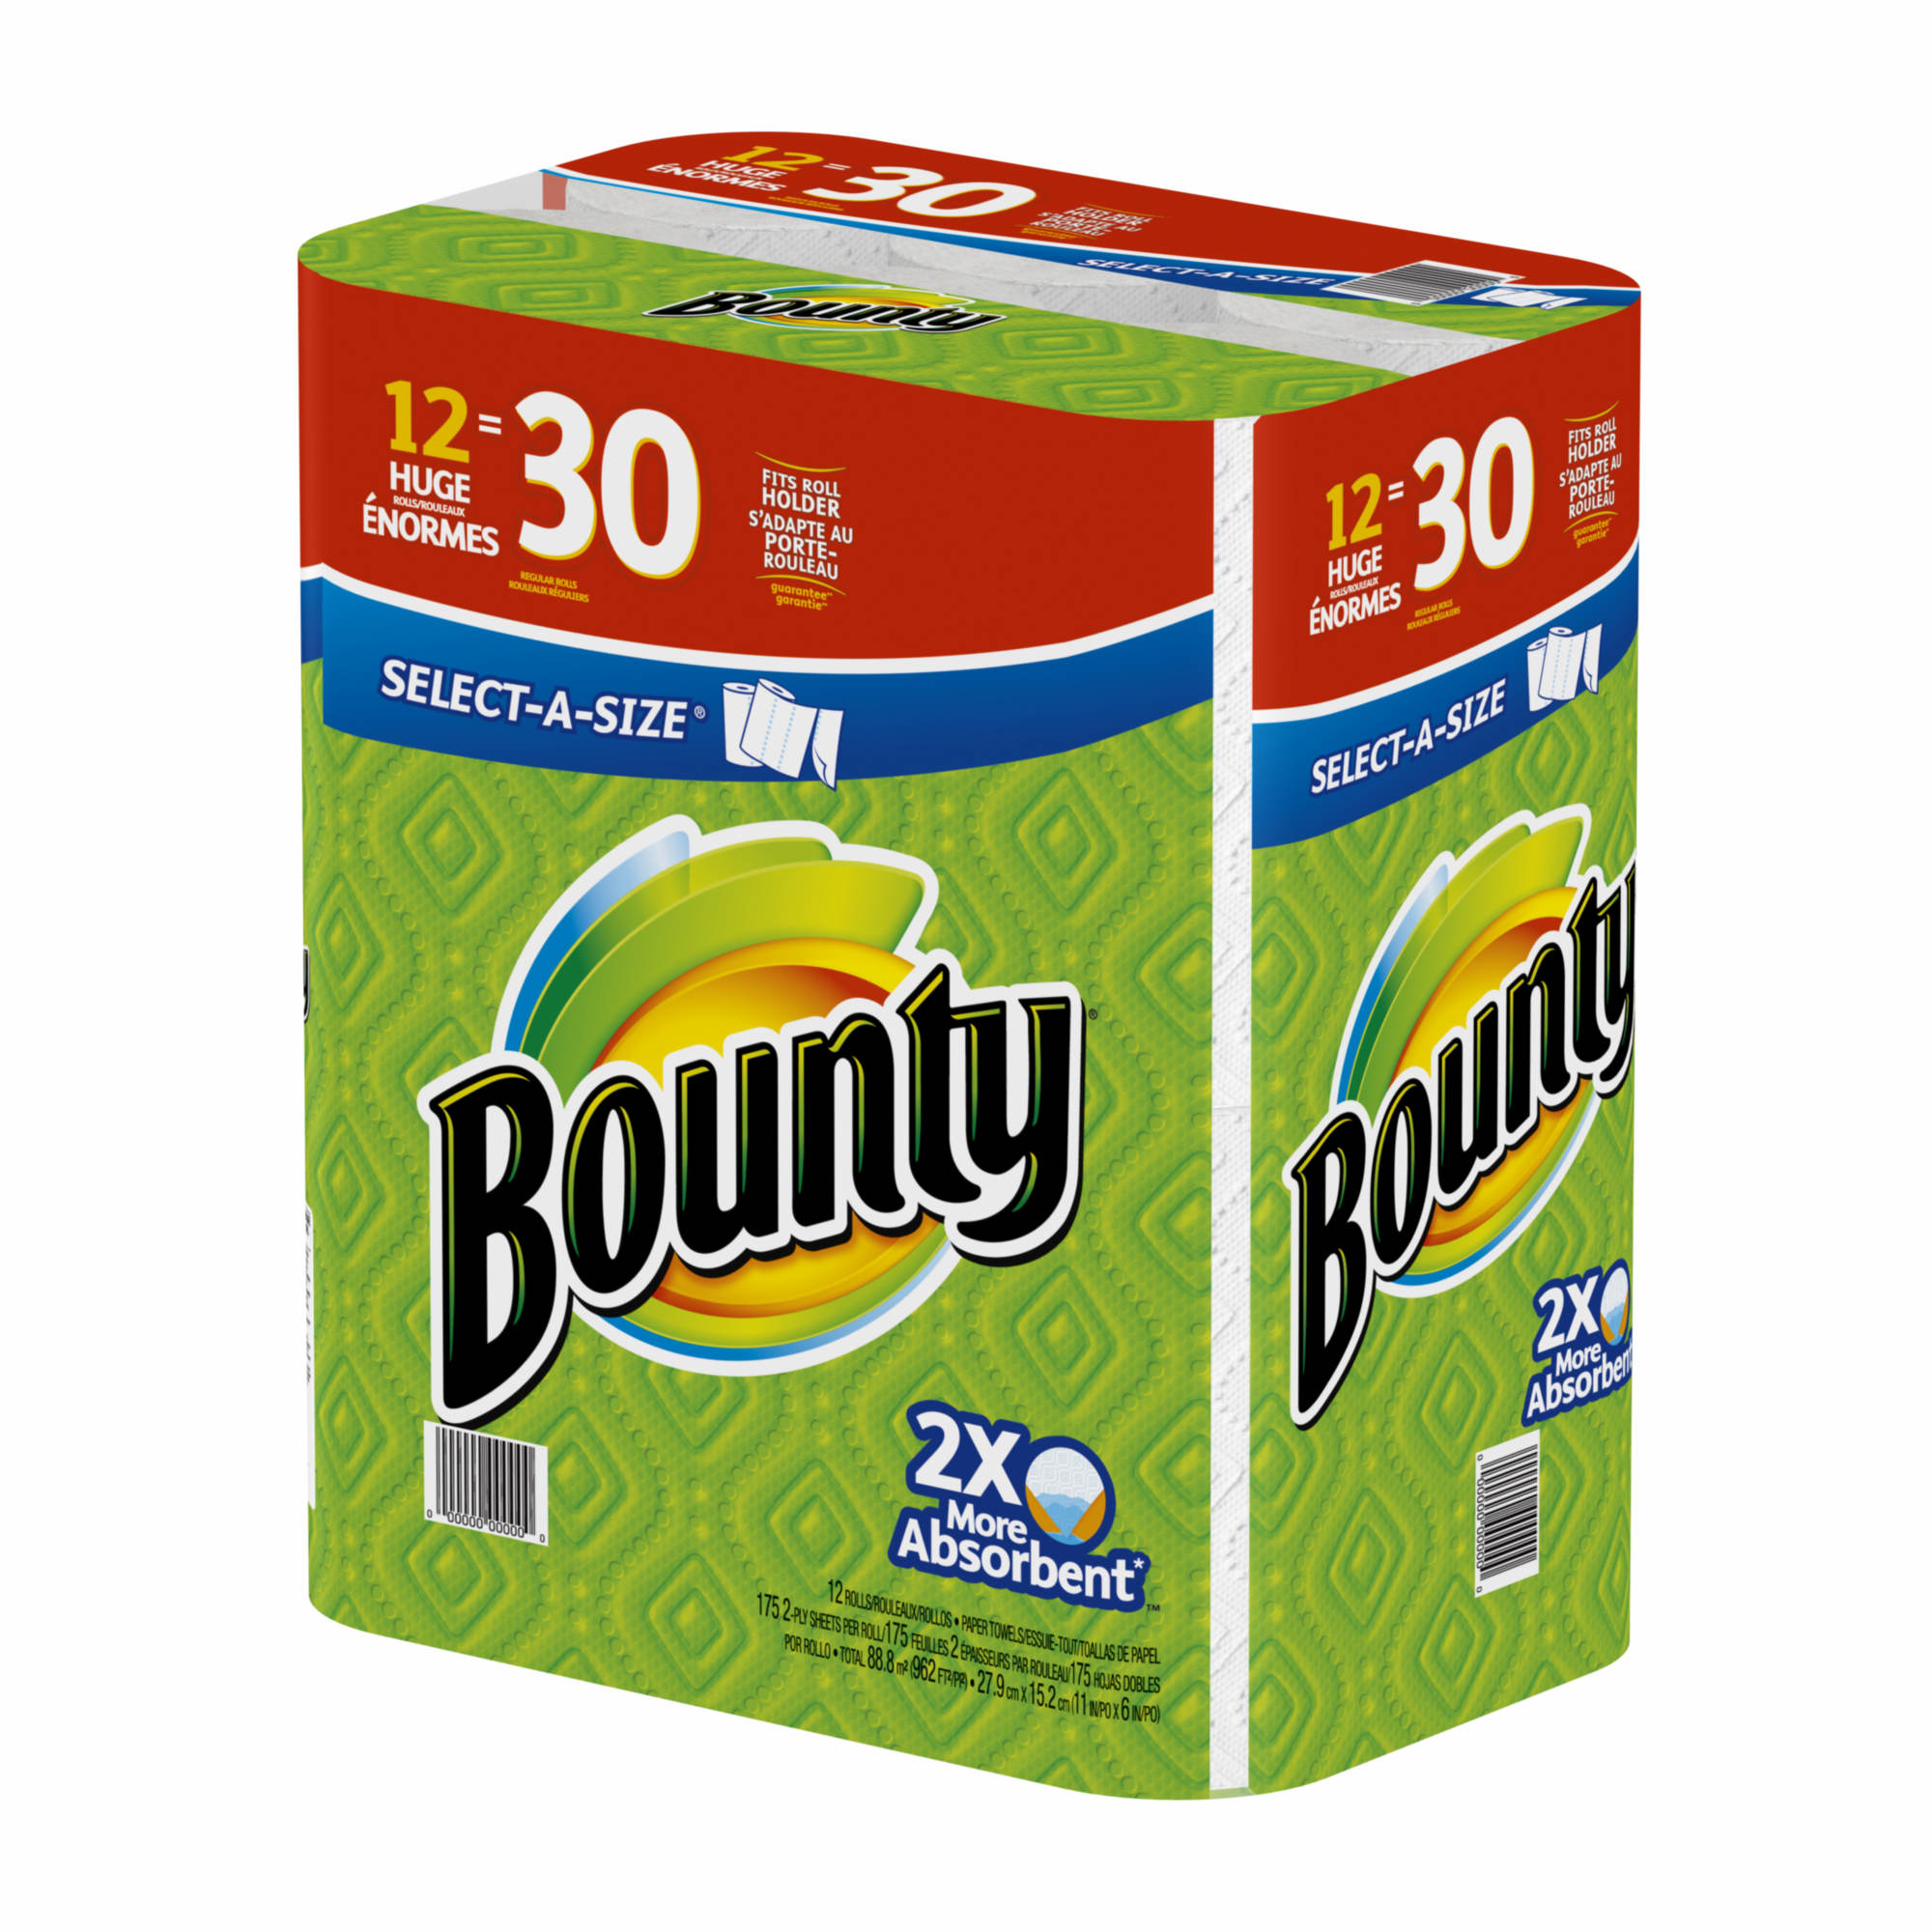 Bulk Bounty Paper Towels Wholesale: Bounty Select A Size Paper Towels, White, 12 Huge Rolls